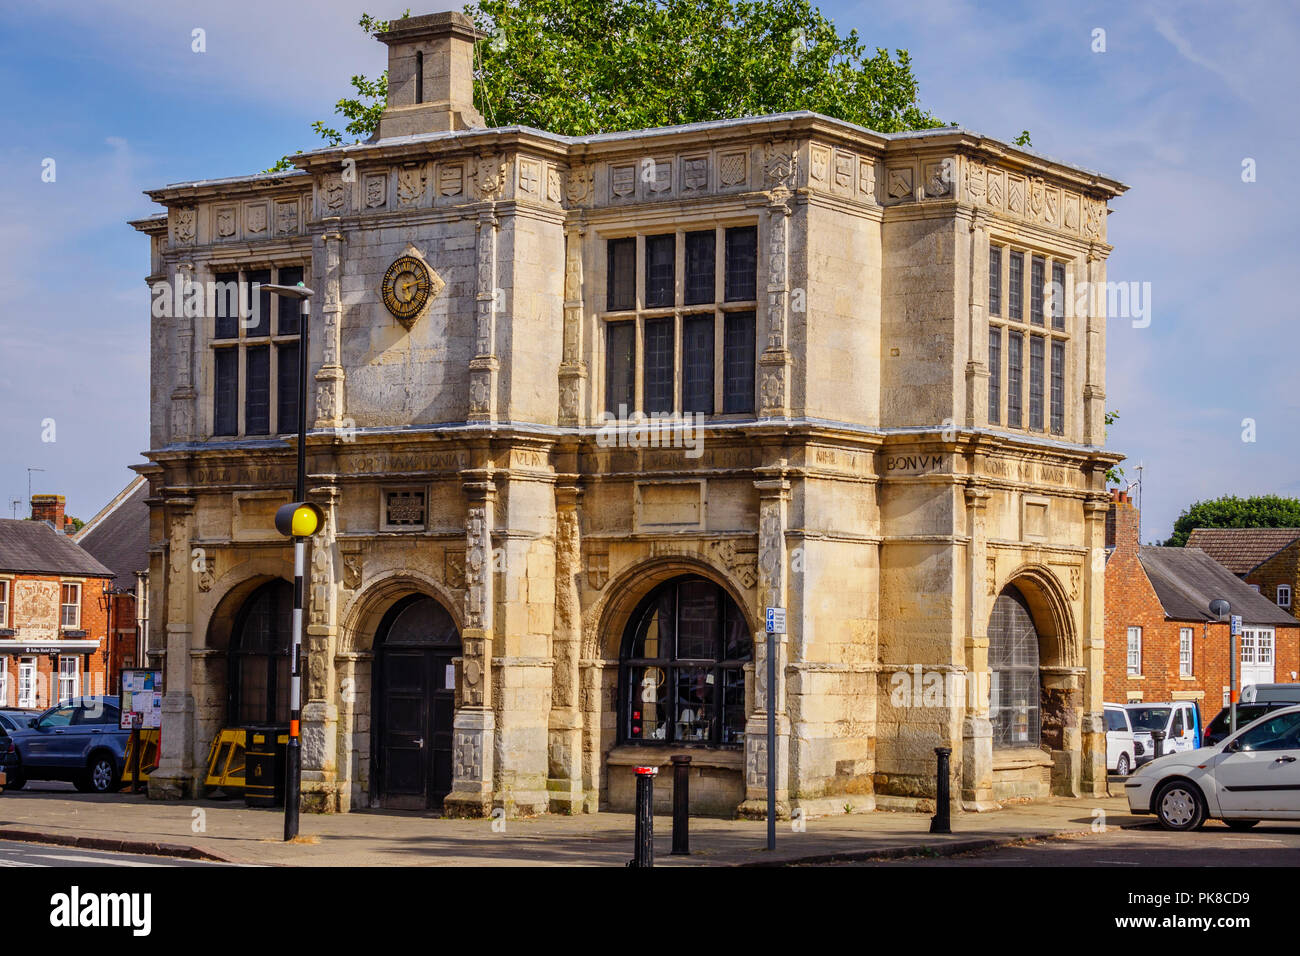 Old Library Market House Building Rothwell Kettering Northamptonshire East Midlands England - Stock Image